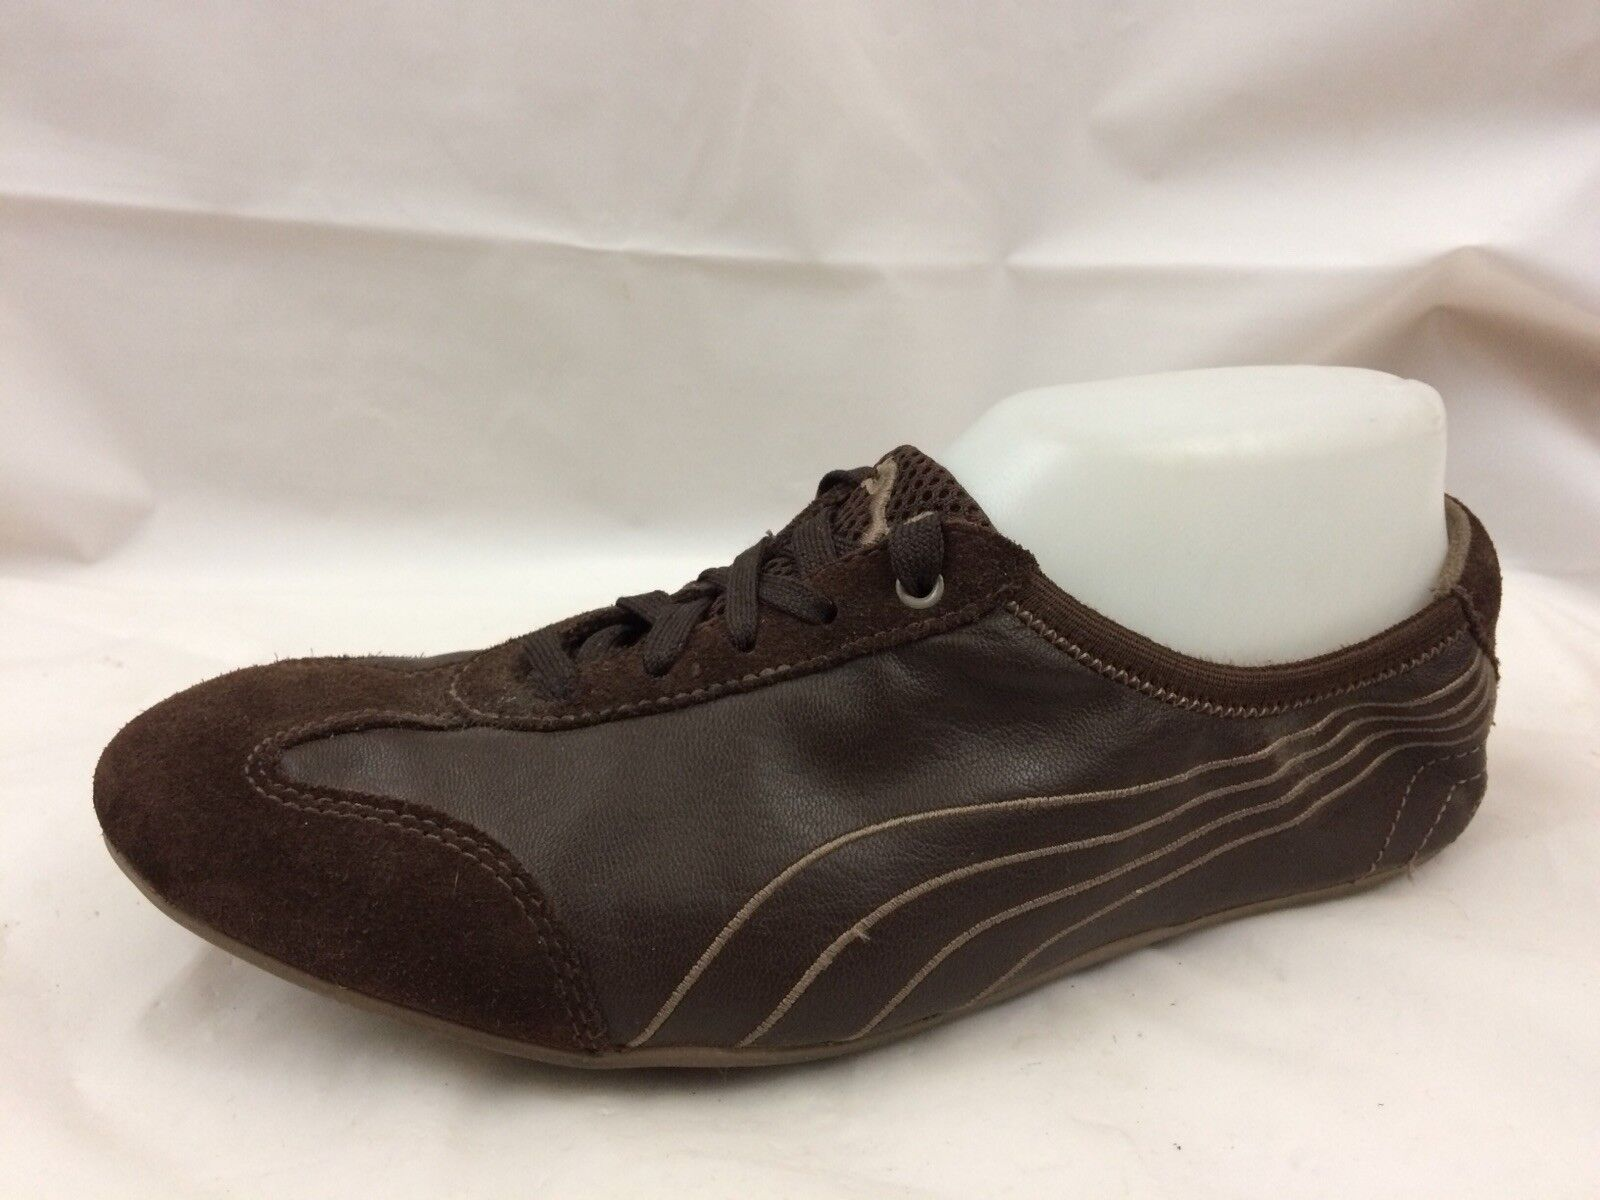 PUMA Womens 8 Med Brown Running shoes Athletic Sneaker Suede Leather 352153 01